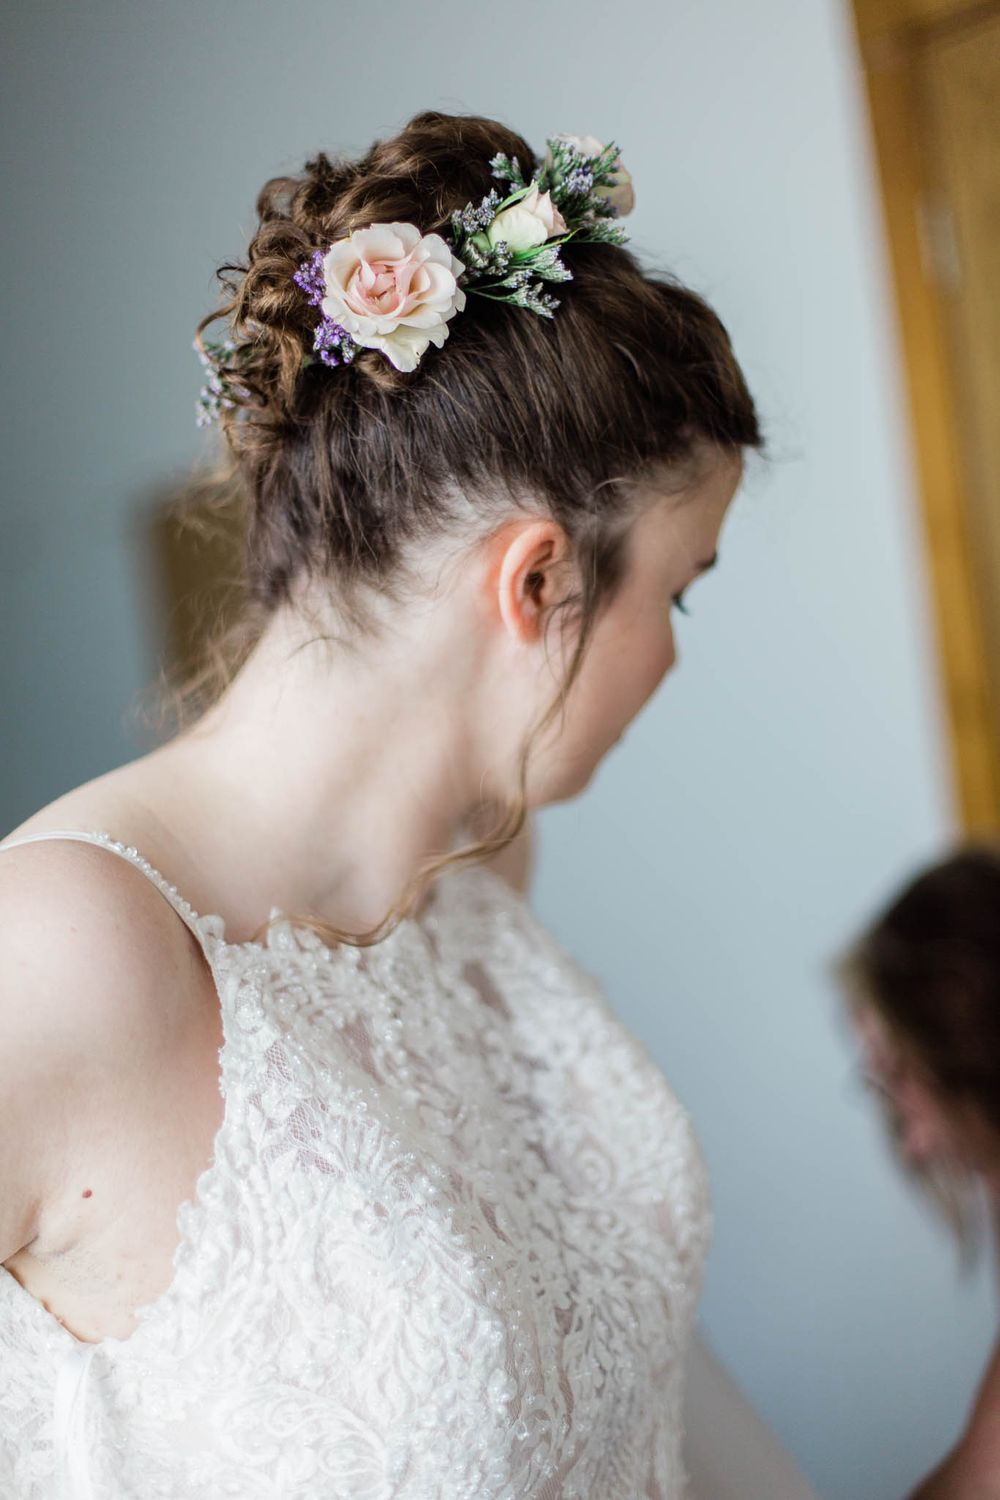 A bride wearing spring flowers in her hair and preparing for her wedding.